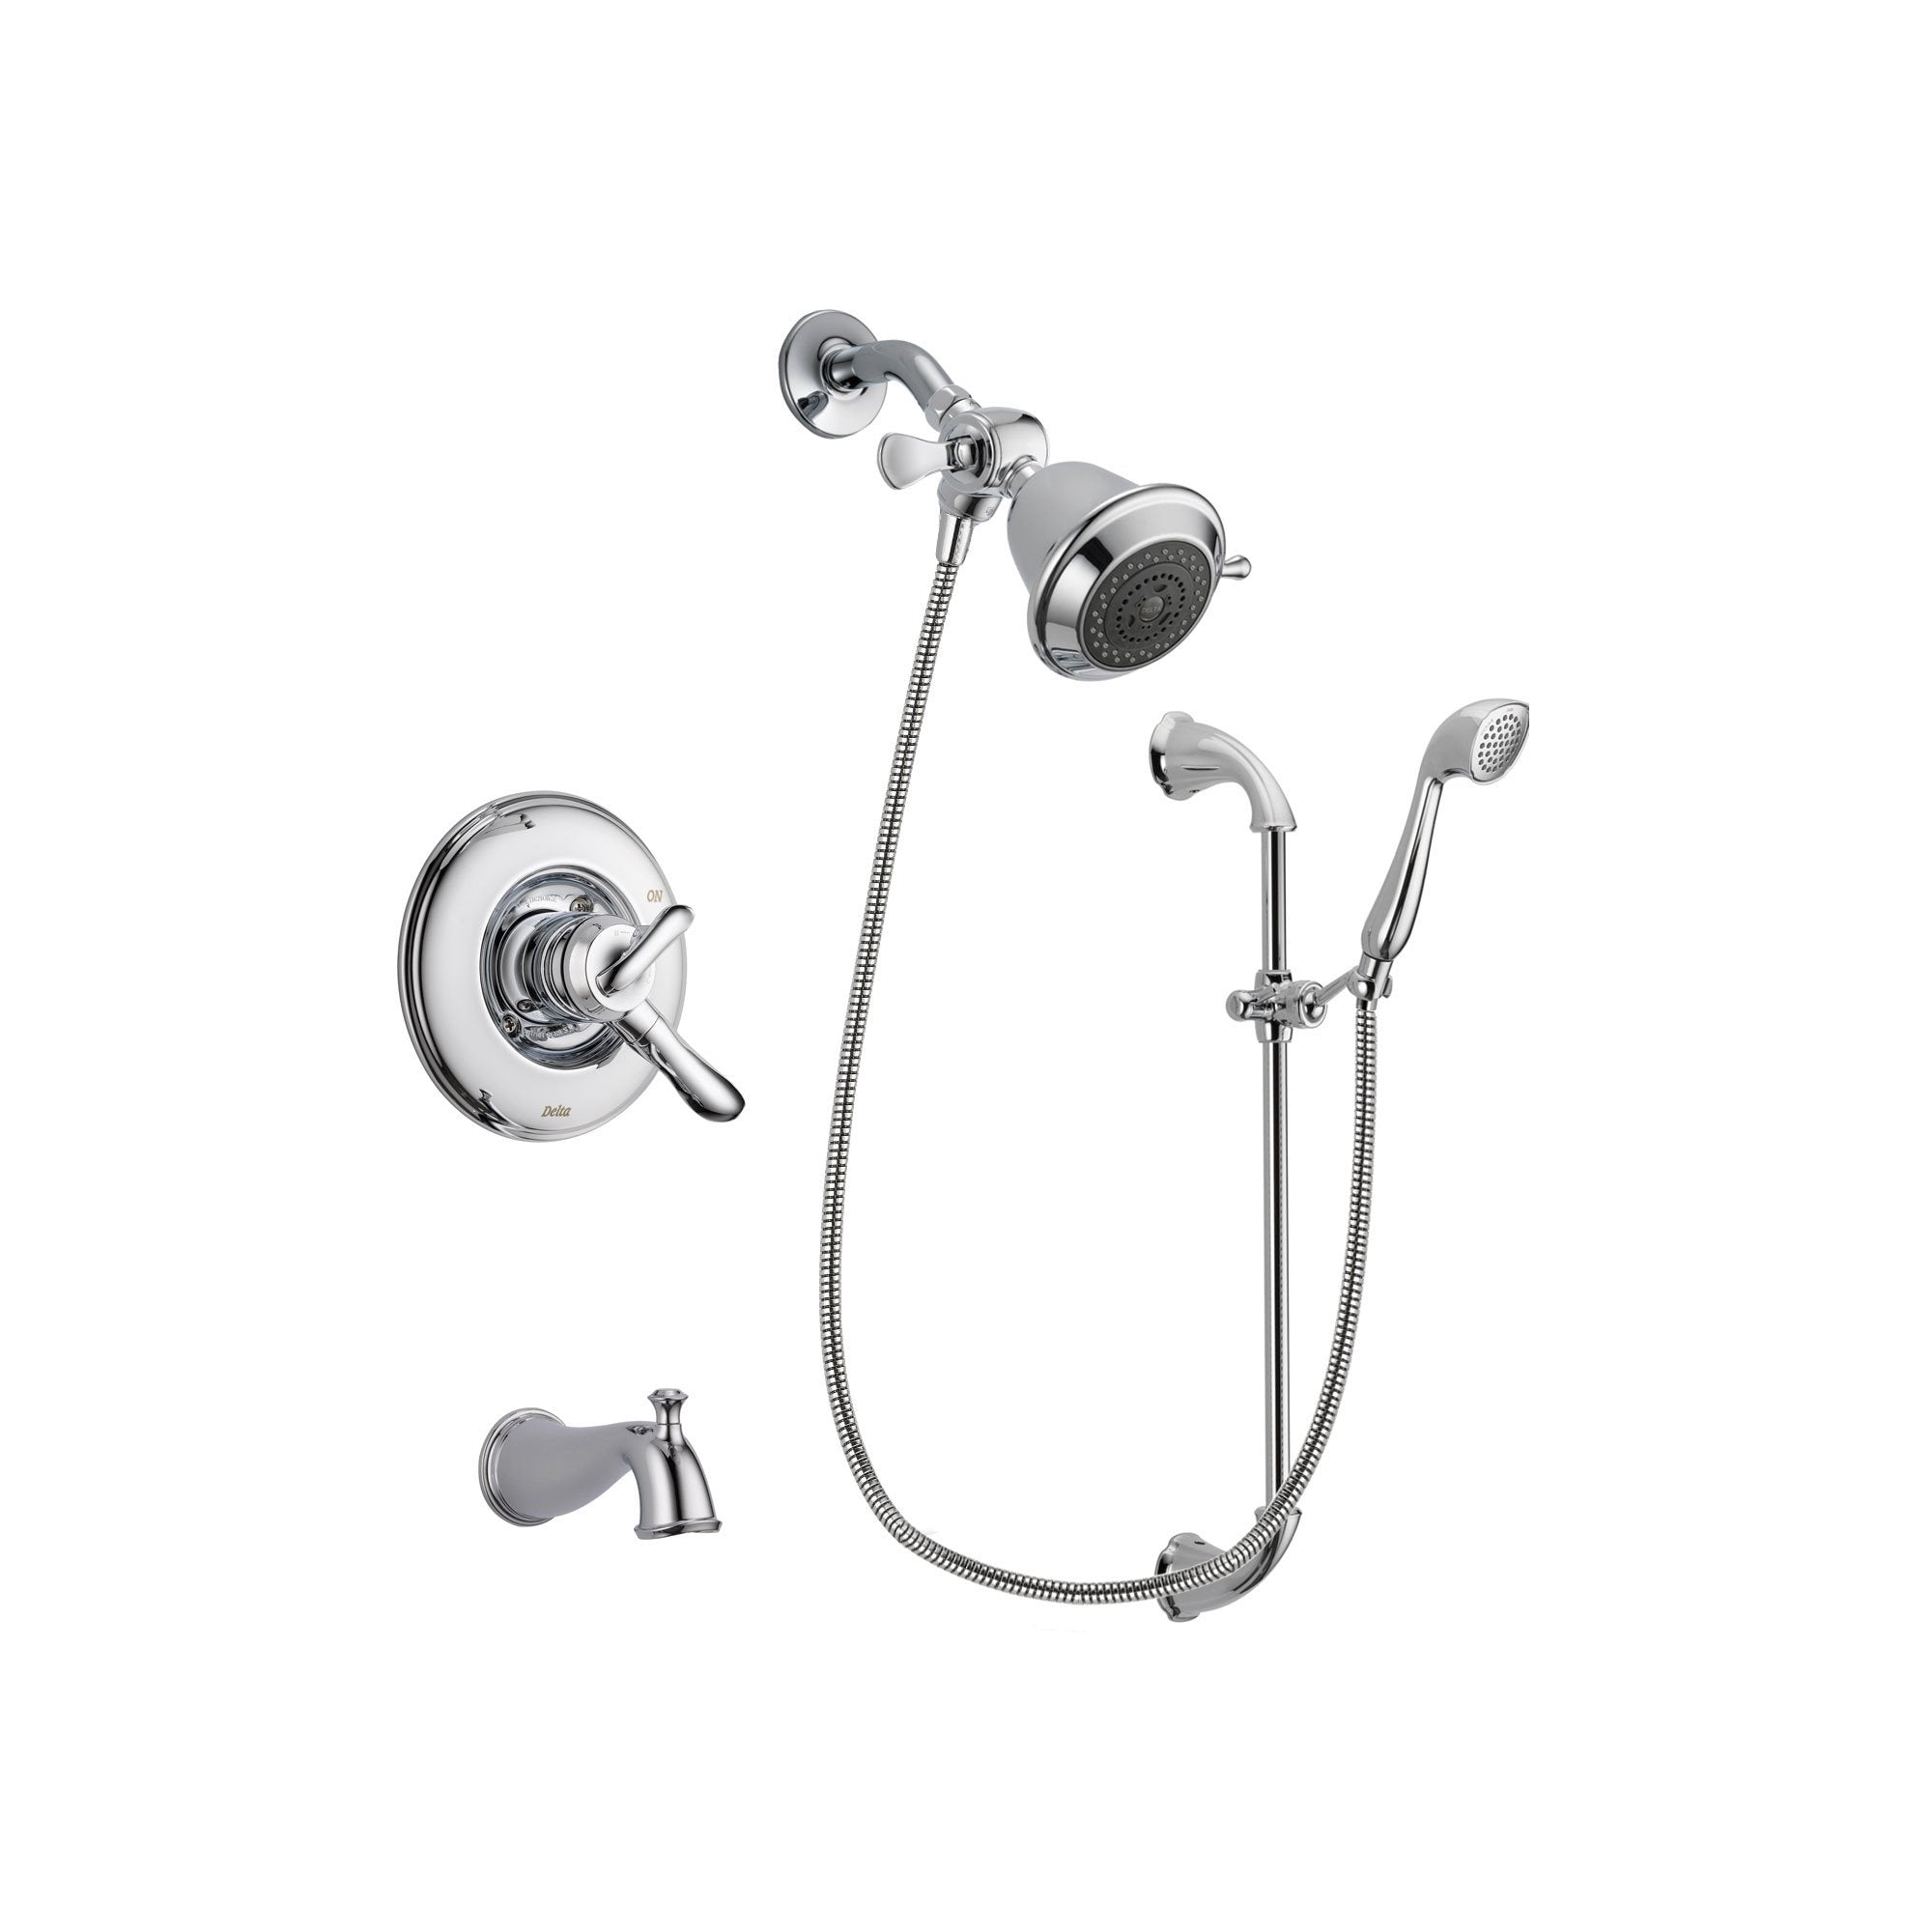 brushed faucets sink valve bathroom delta tub replacement model moen parts kohler shower faucet kitchen